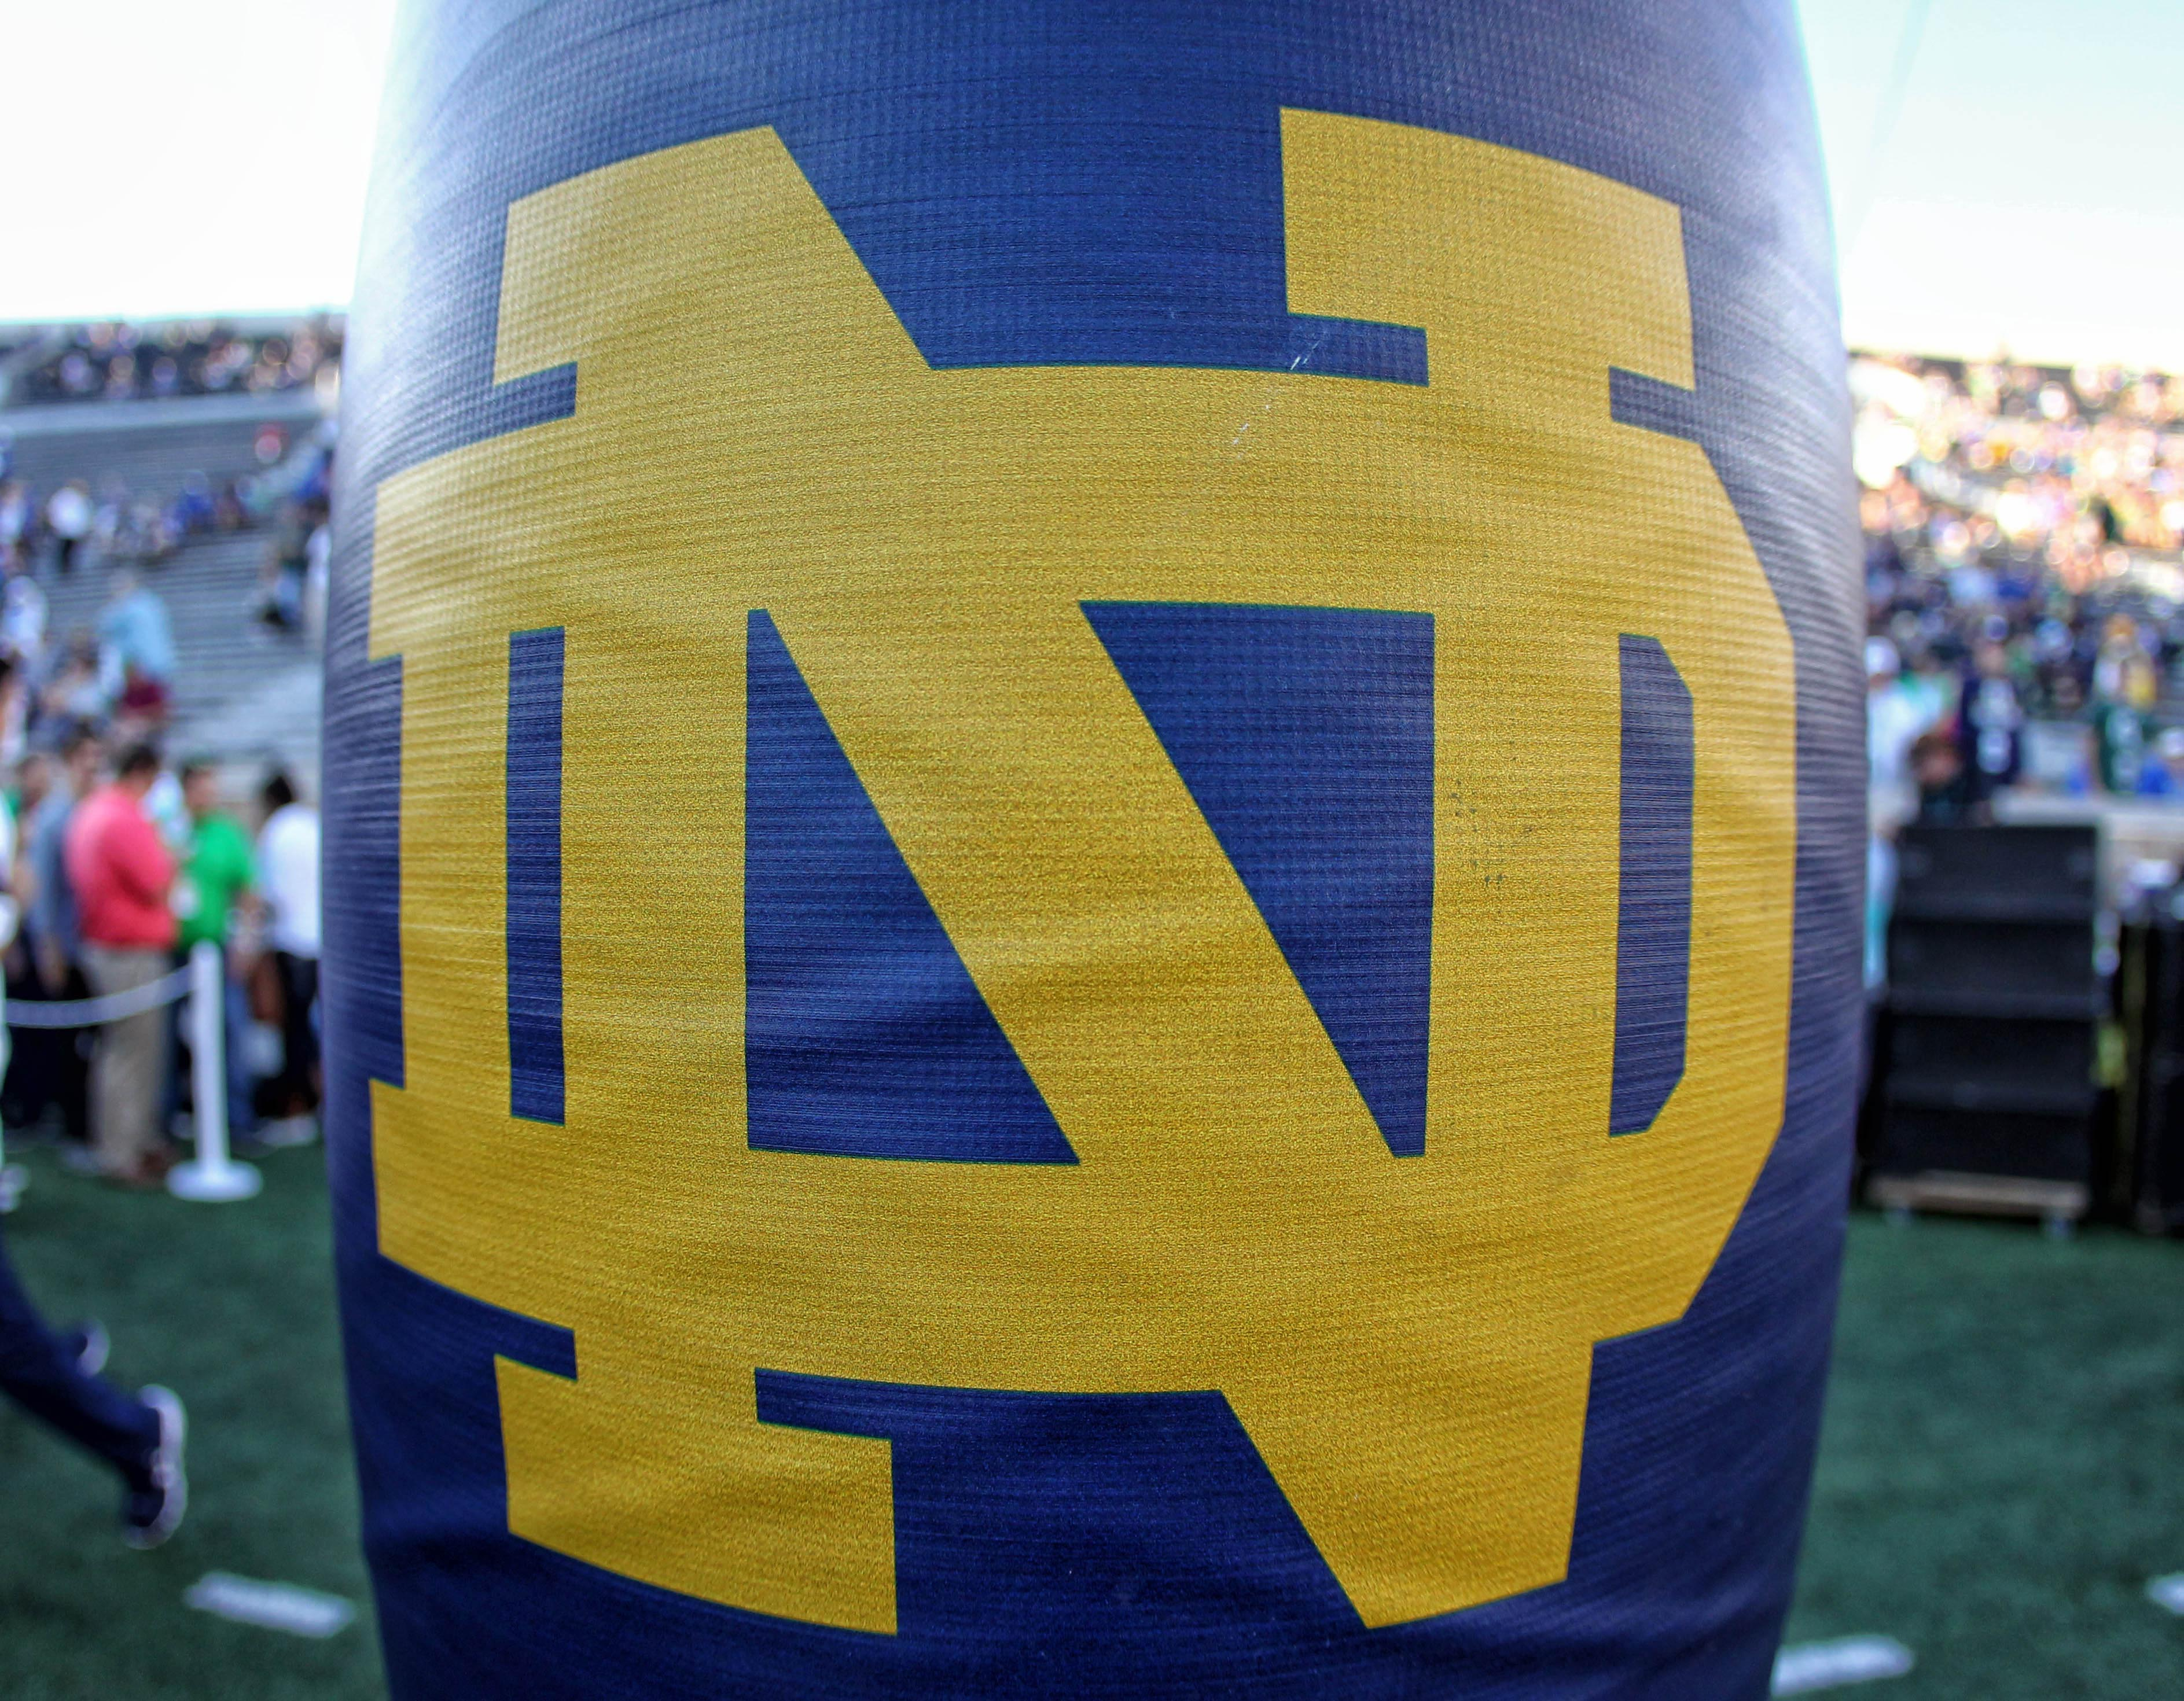 9546151-ncaa-football-michigan-state-at-notre-dame